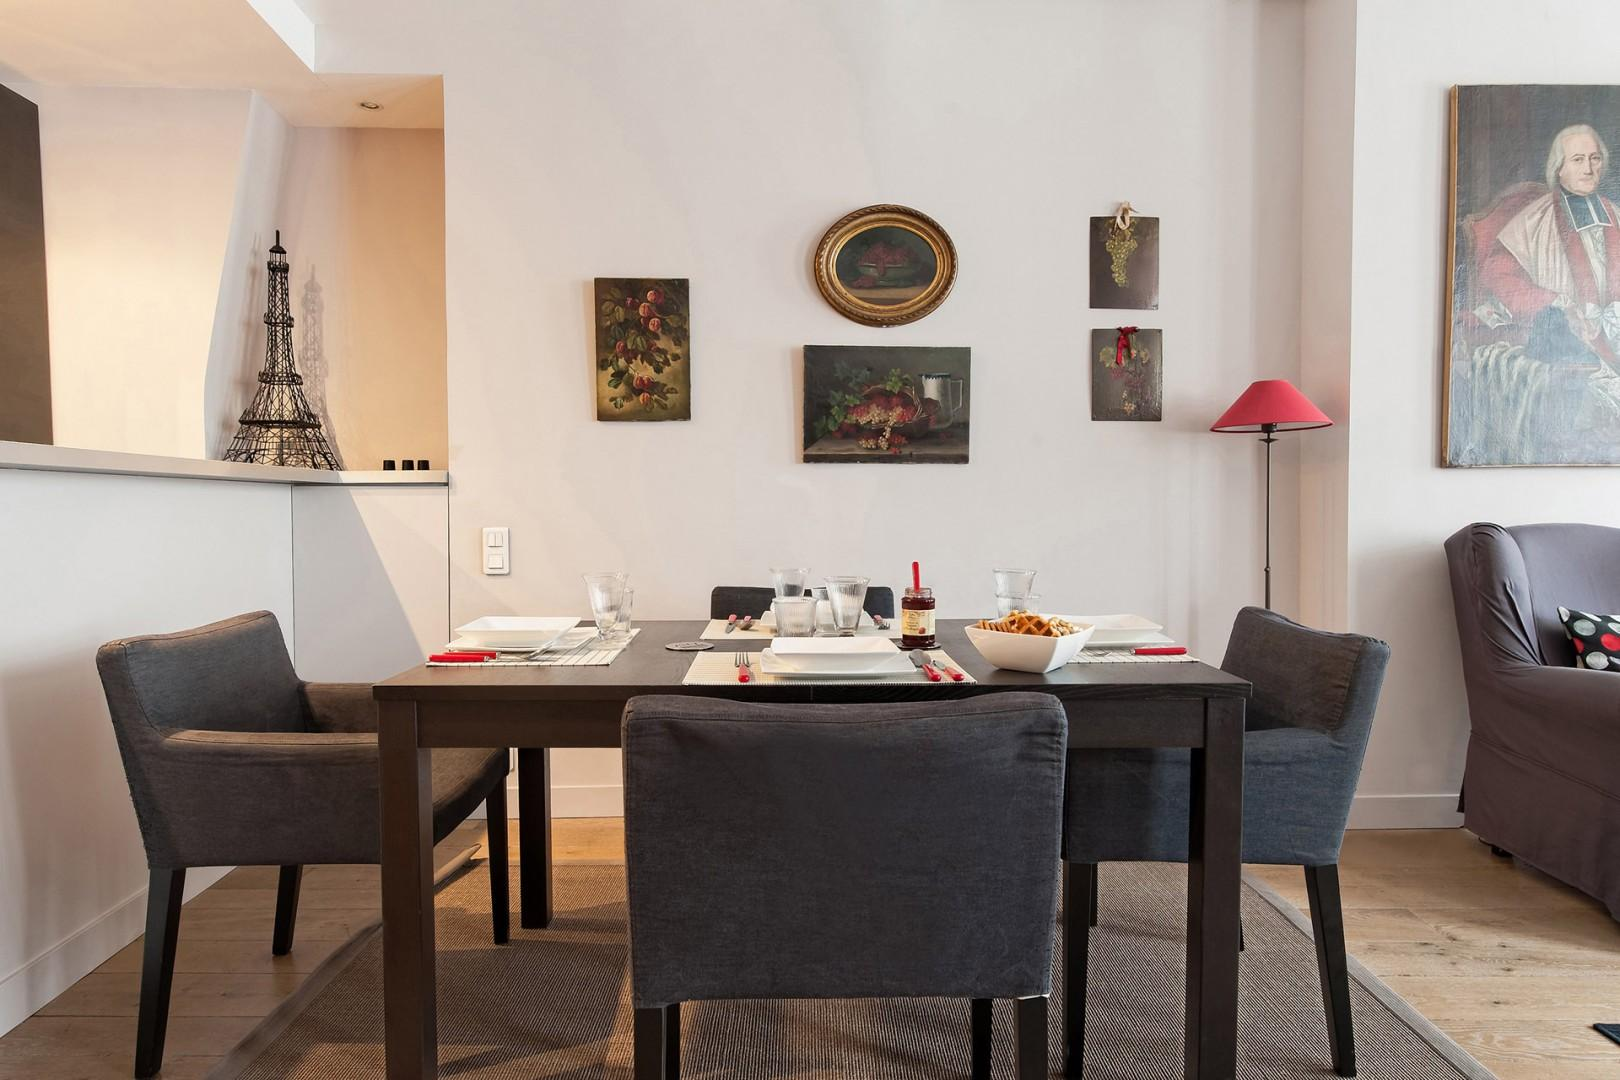 The simple and comfortable dining area seats four guests.